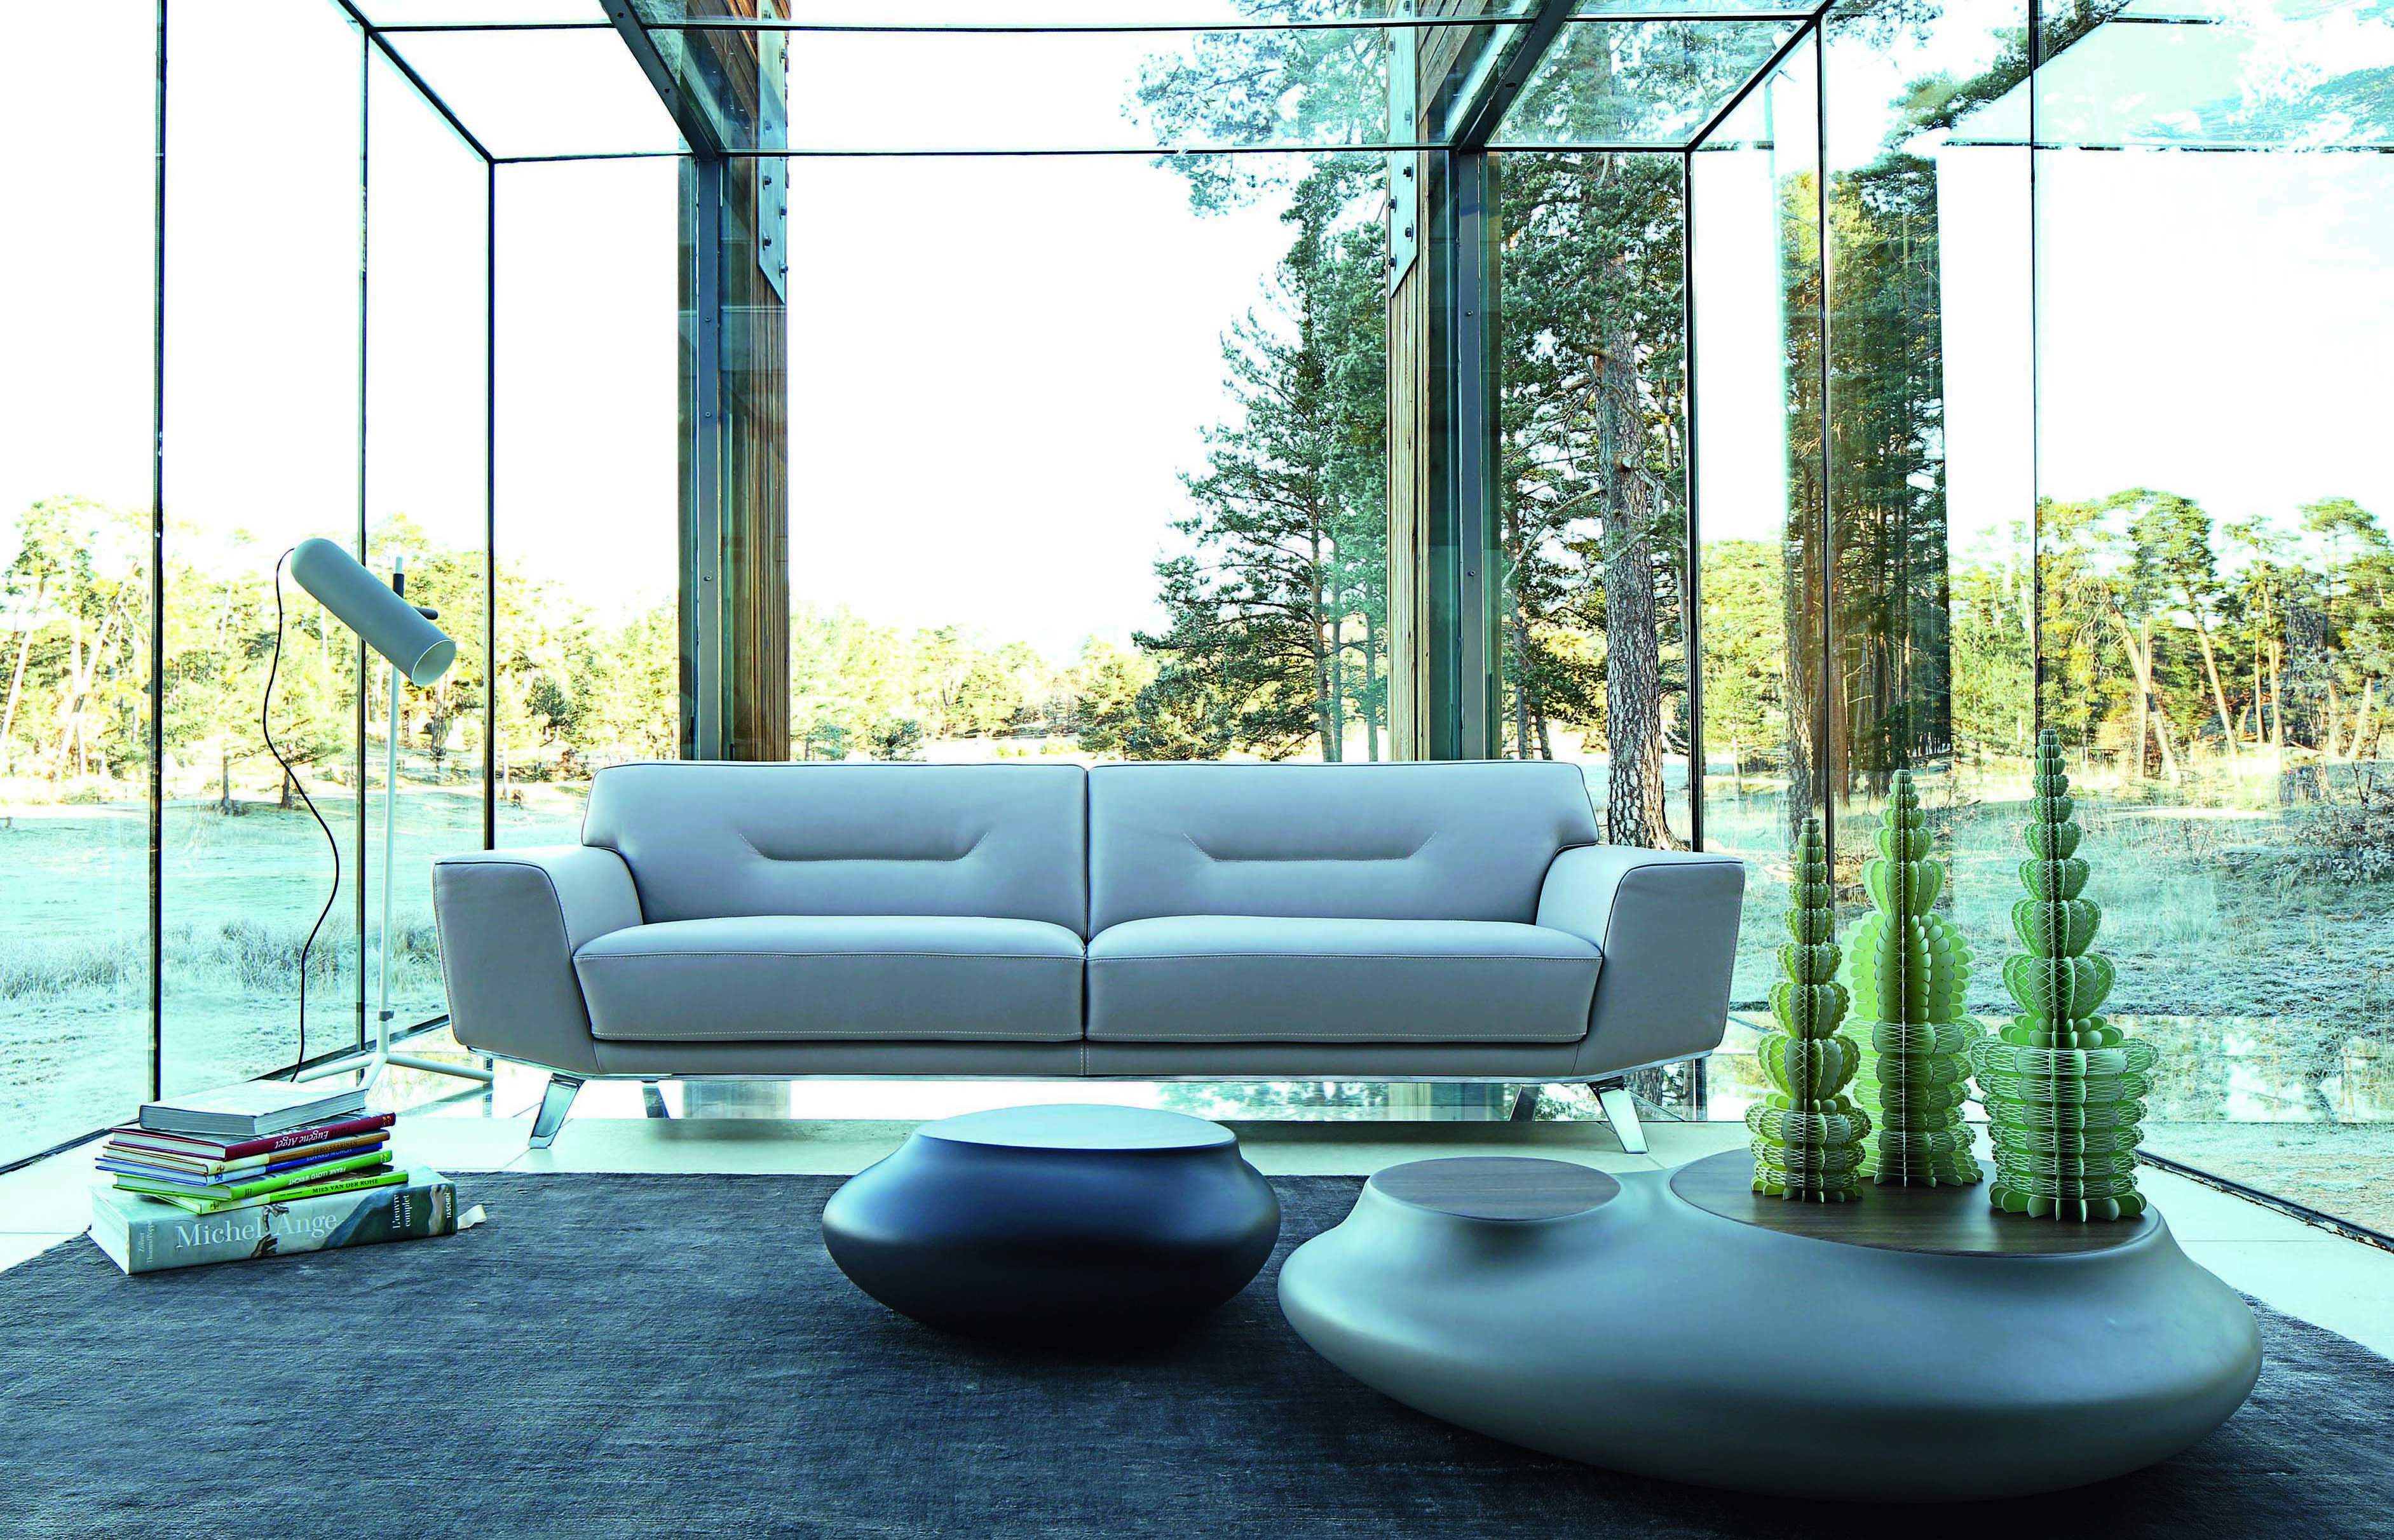 Roche Bobois - PERLE - leather sofa by Sacha Lakic #rochebobois ...